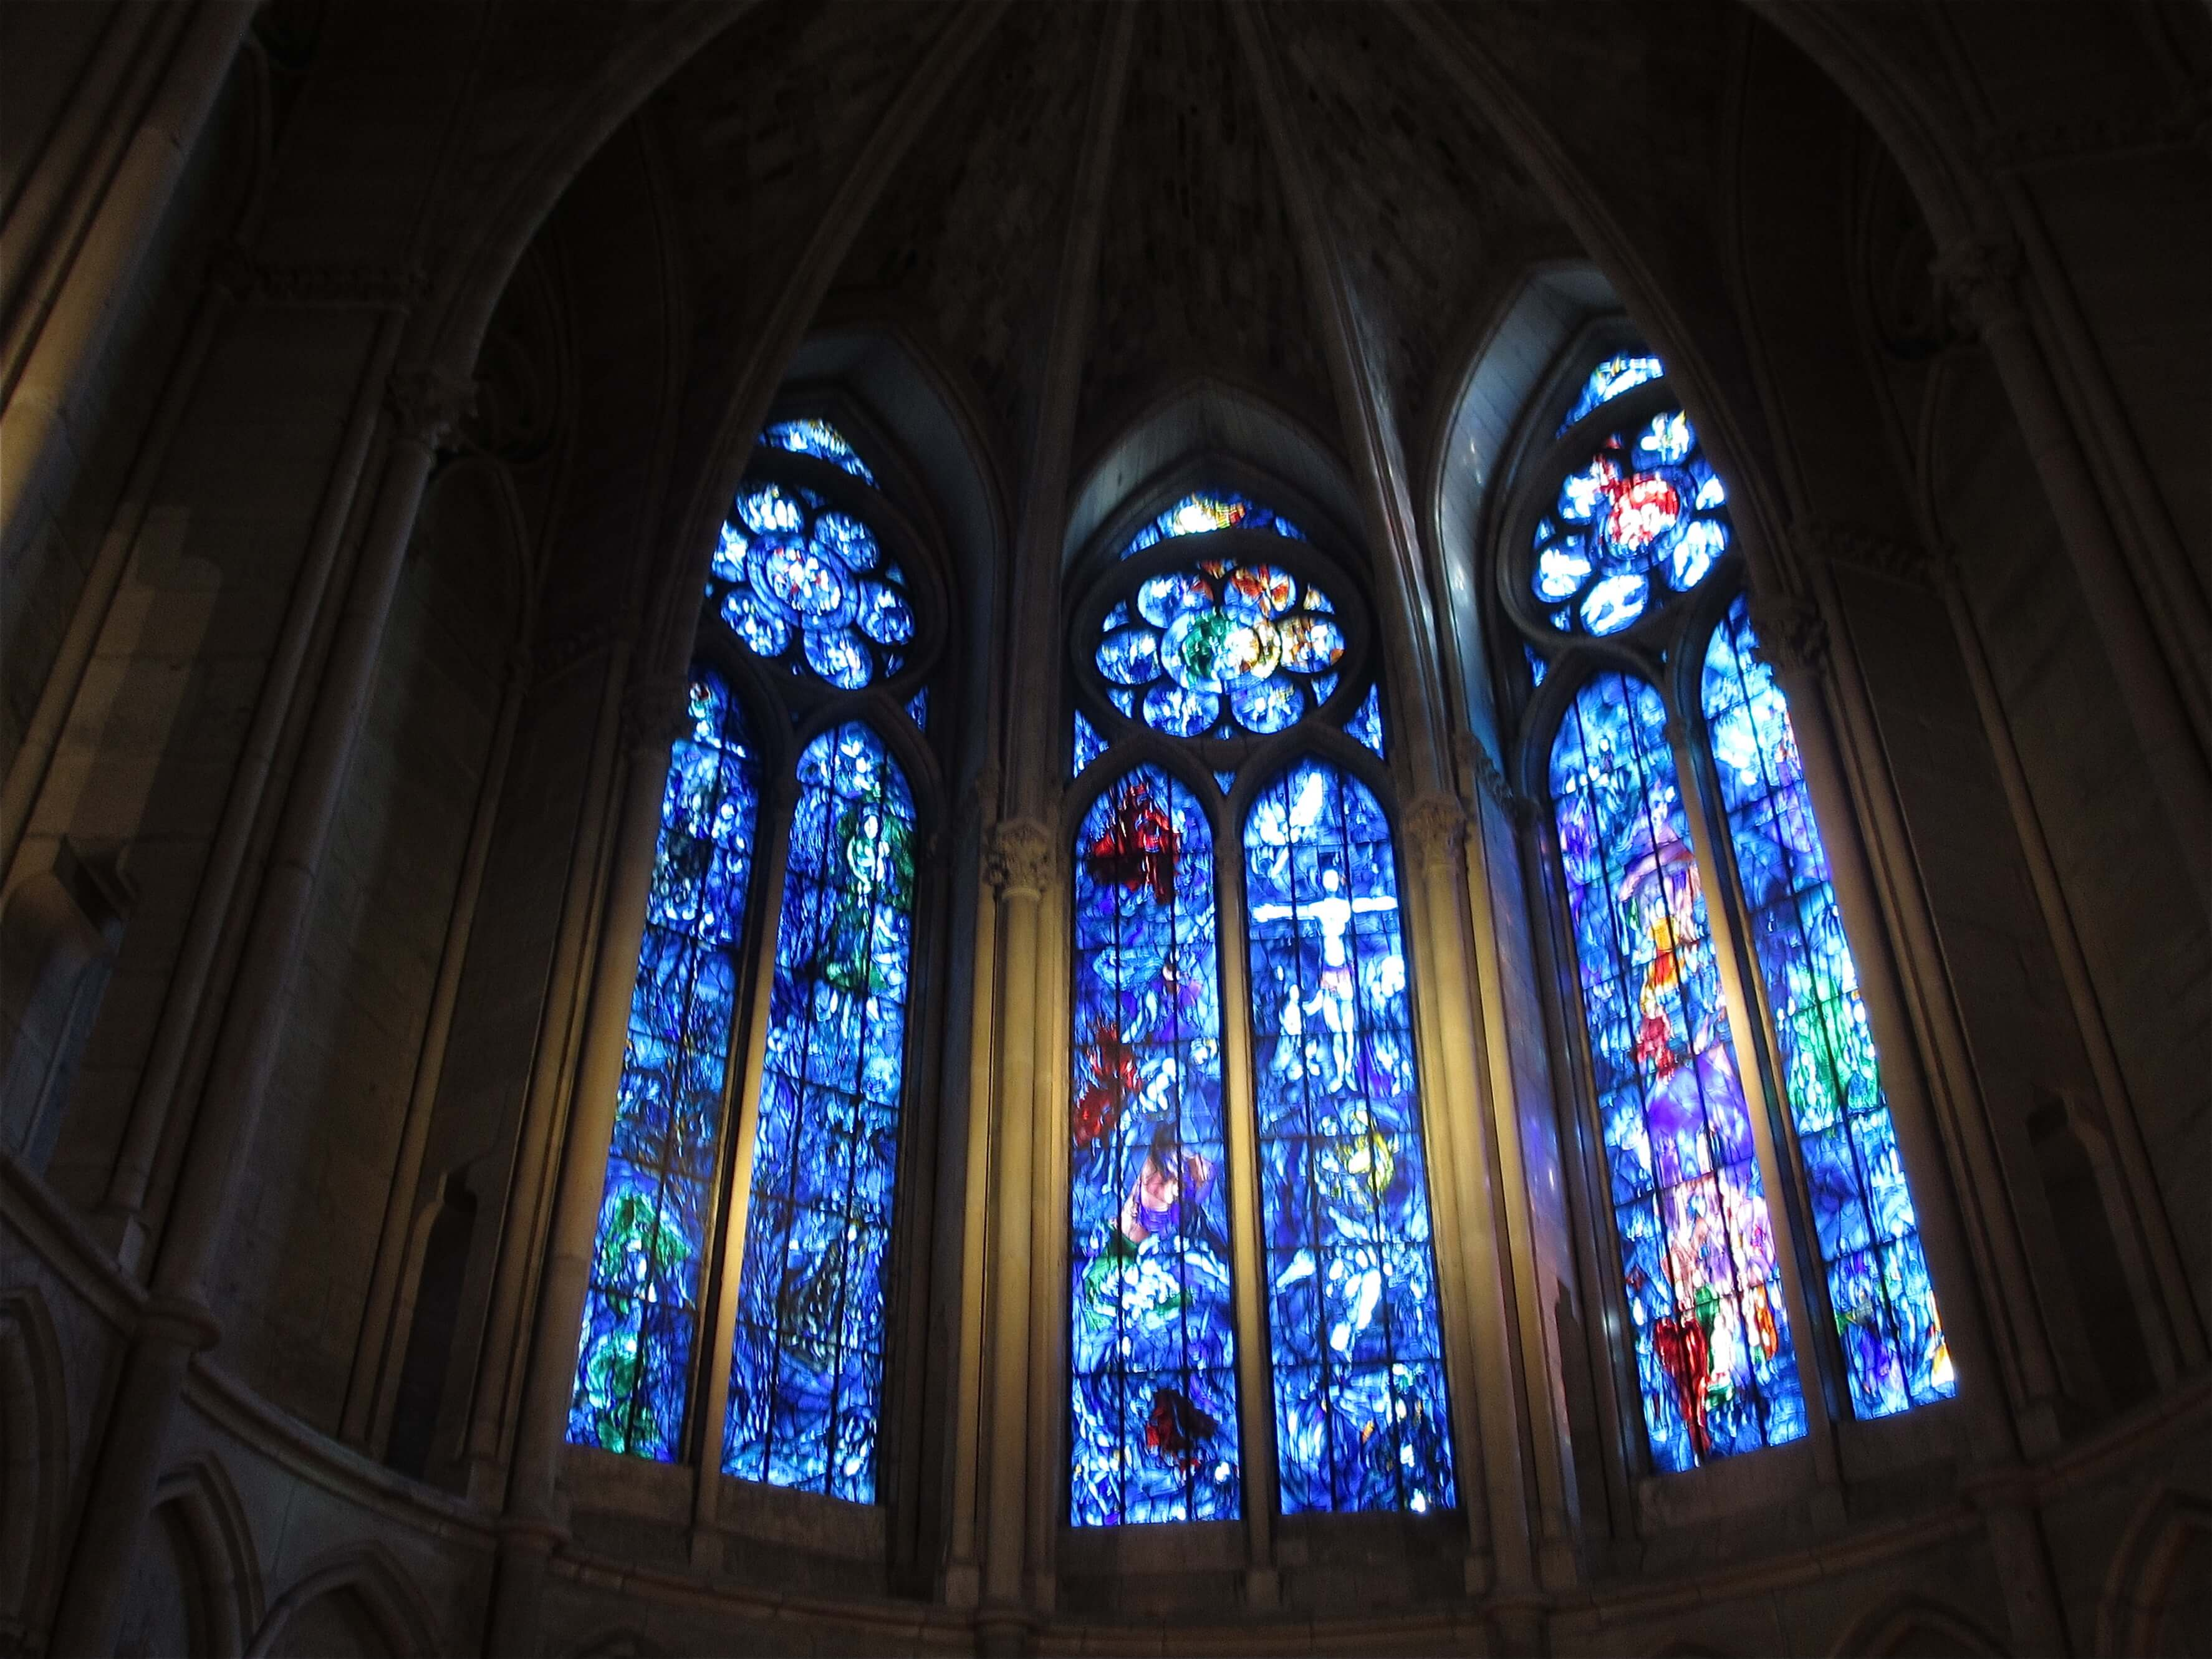 The famous Chagall windows. The left representing the Old Testament, the middle the New Testament and the right the Kings of France (the green images are Joan of Arc and Charles VII who Joan brought triumphantly to Reims for his coronation)